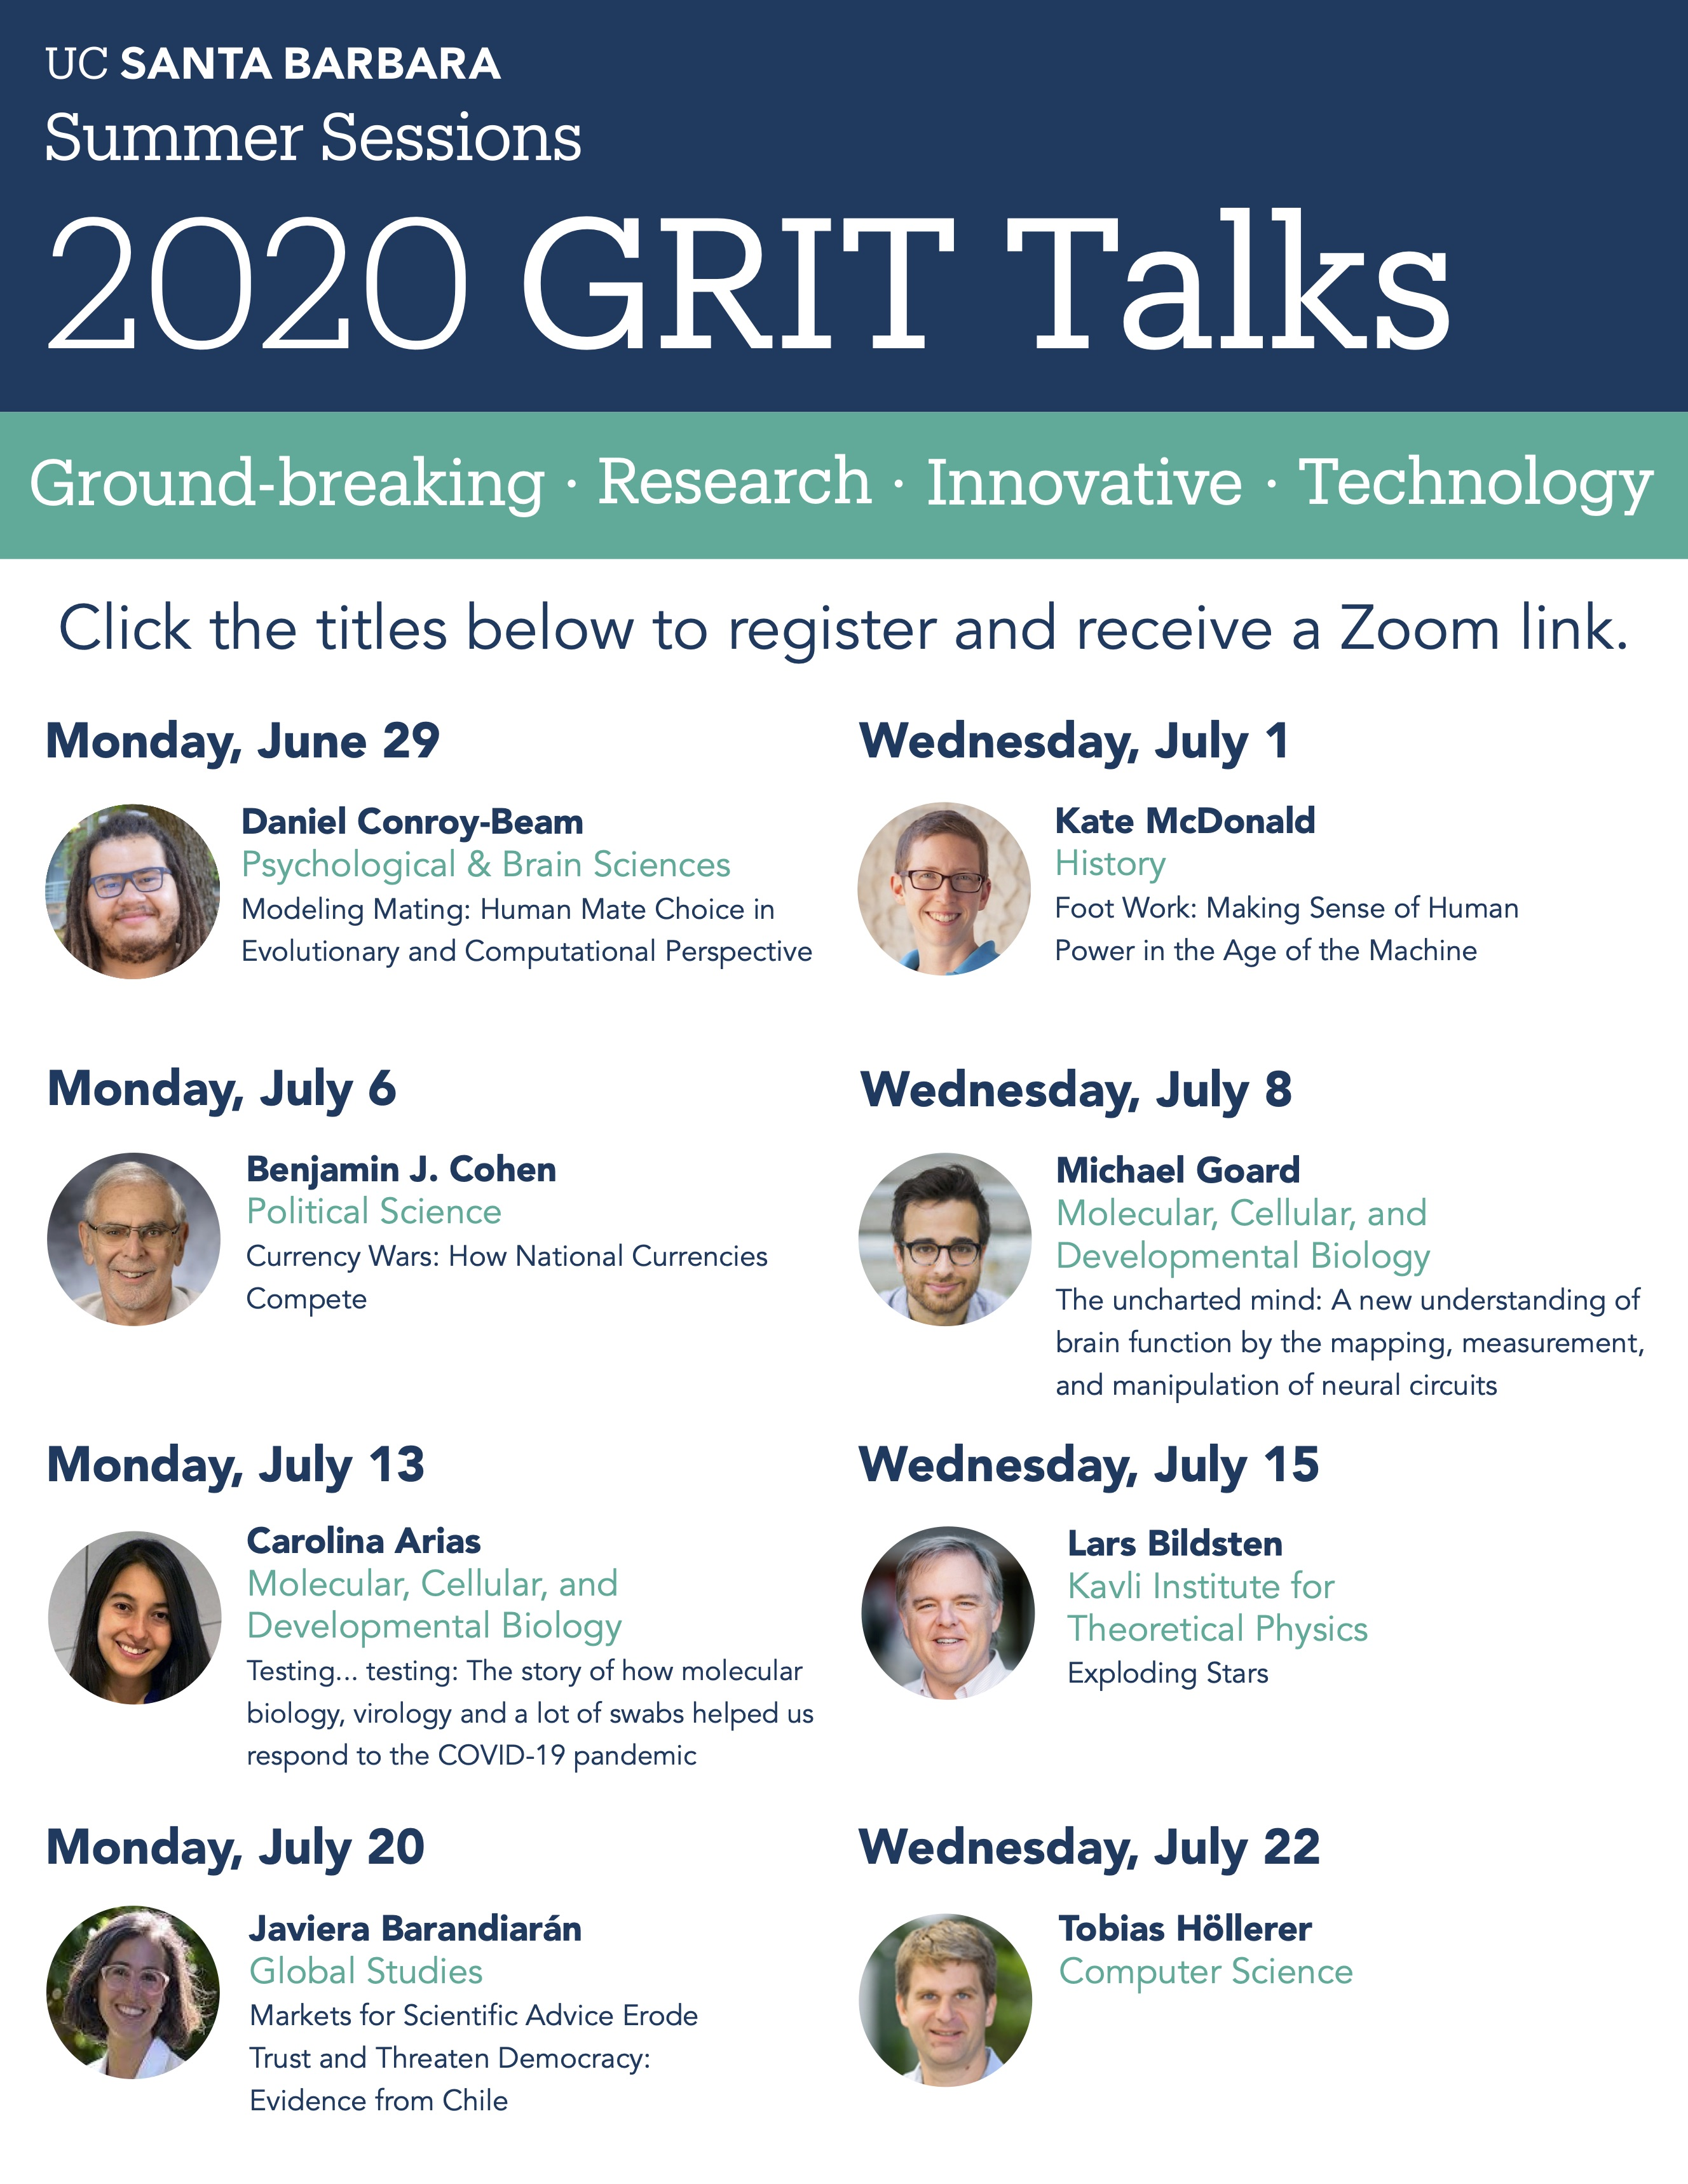 GRIT Talks 2020